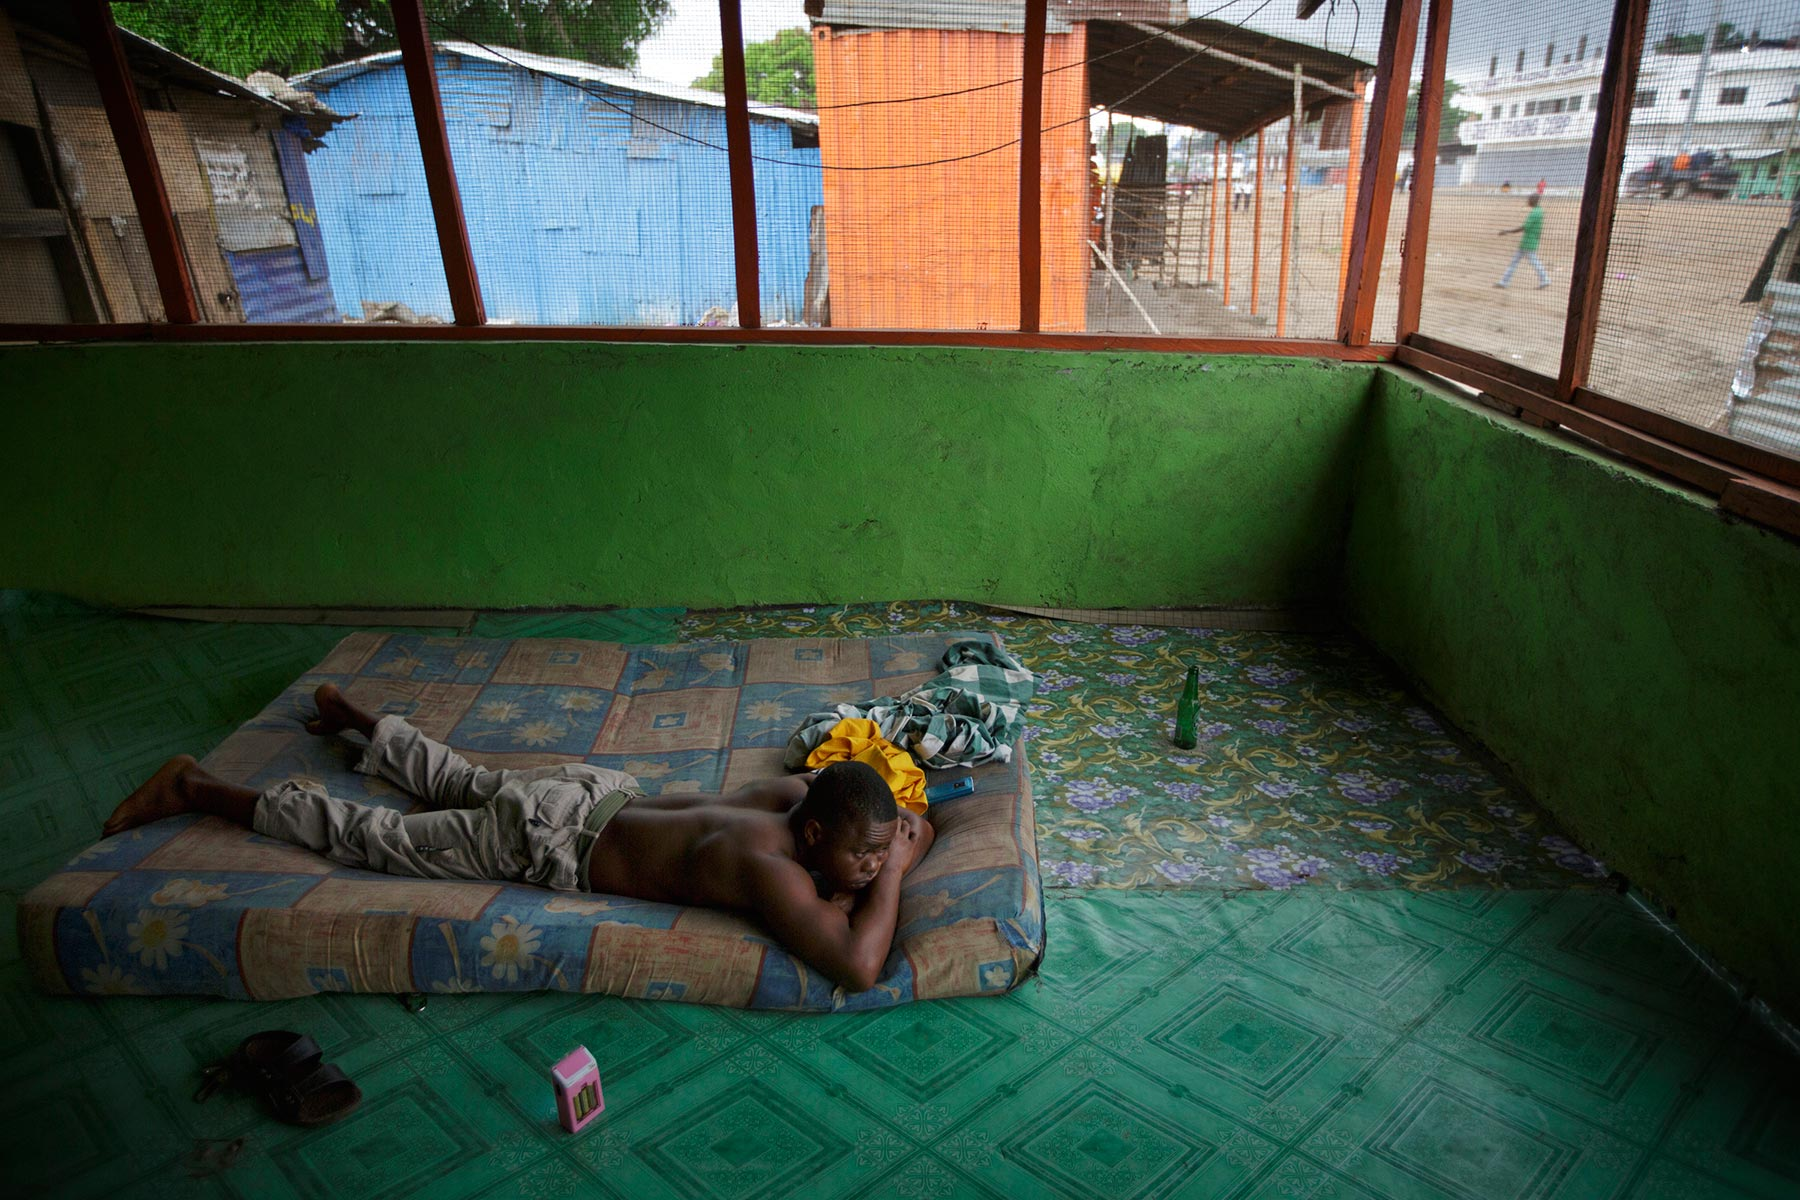 MAY 26, 2015 MONROVIA, LIBERIA Former child soldier Momo Dukoe, 25, lays down on mattress in early morning at the floor of restaurant where he sleeps during the night in Monrovia, Liberia on May 26, 2015. Momo, who was forcefully recruited to the government militia in his village in Lofa, northern Liberia when he was 11 years old, has fought for several years during the country's civil war which ended in Aug 2003. Photo by Kuni Takahashi